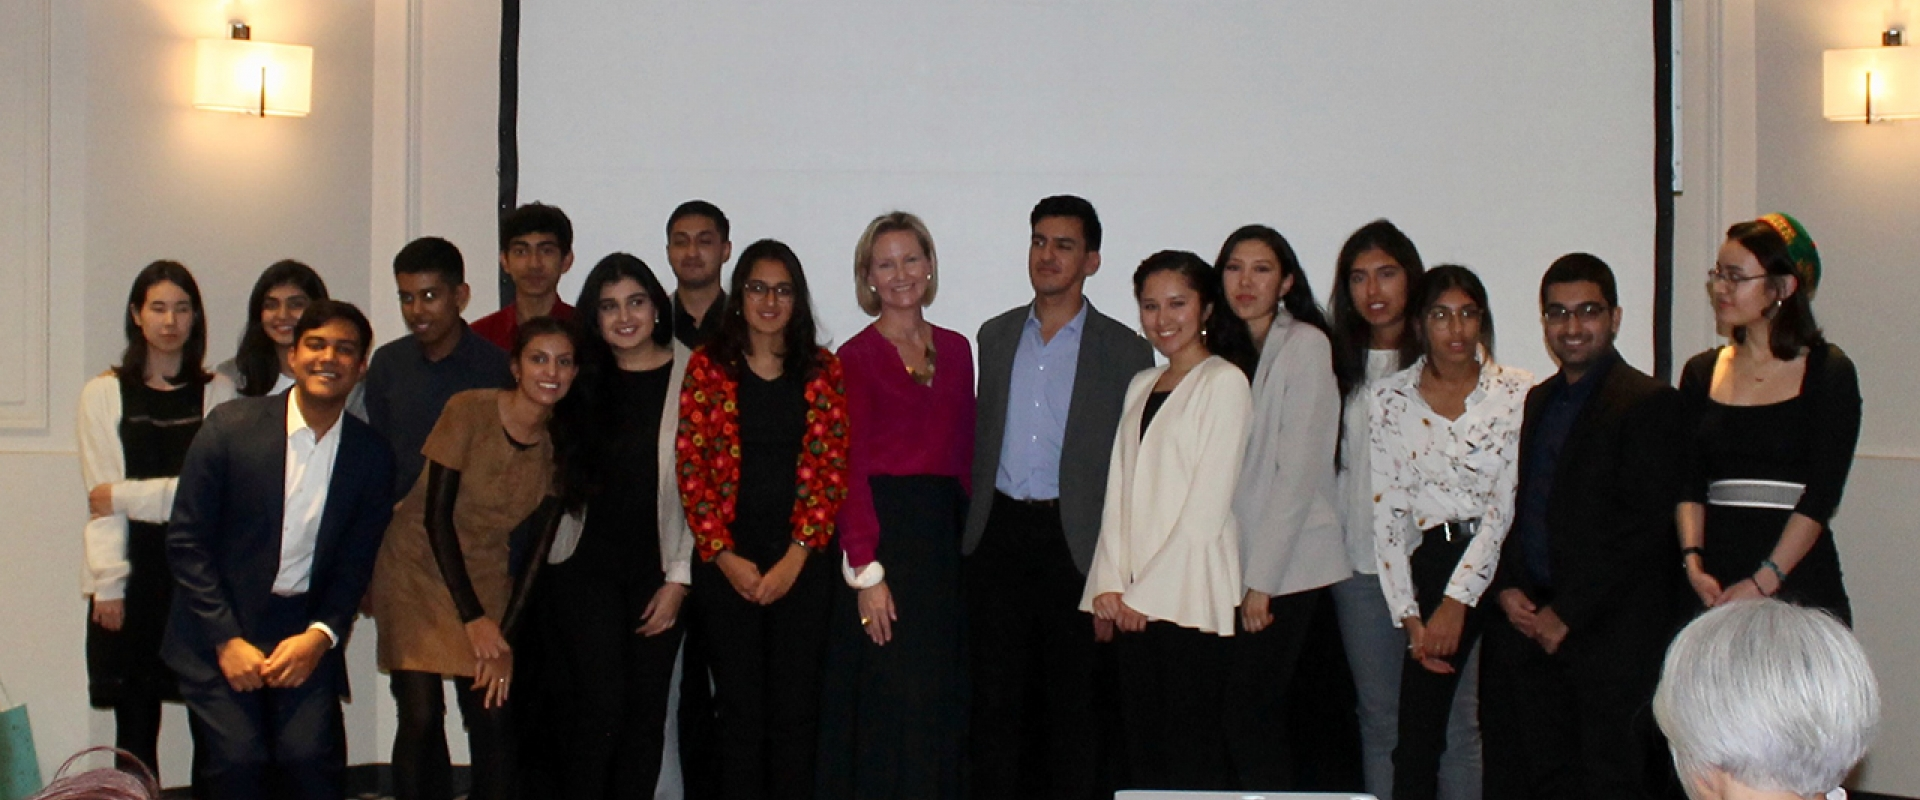 Meredith Preston McGhie, Secretary General of the Global Centre for Pluralism (centre) poses for a group photograph with young members of the Jamat at an institutional dinner in Paris.